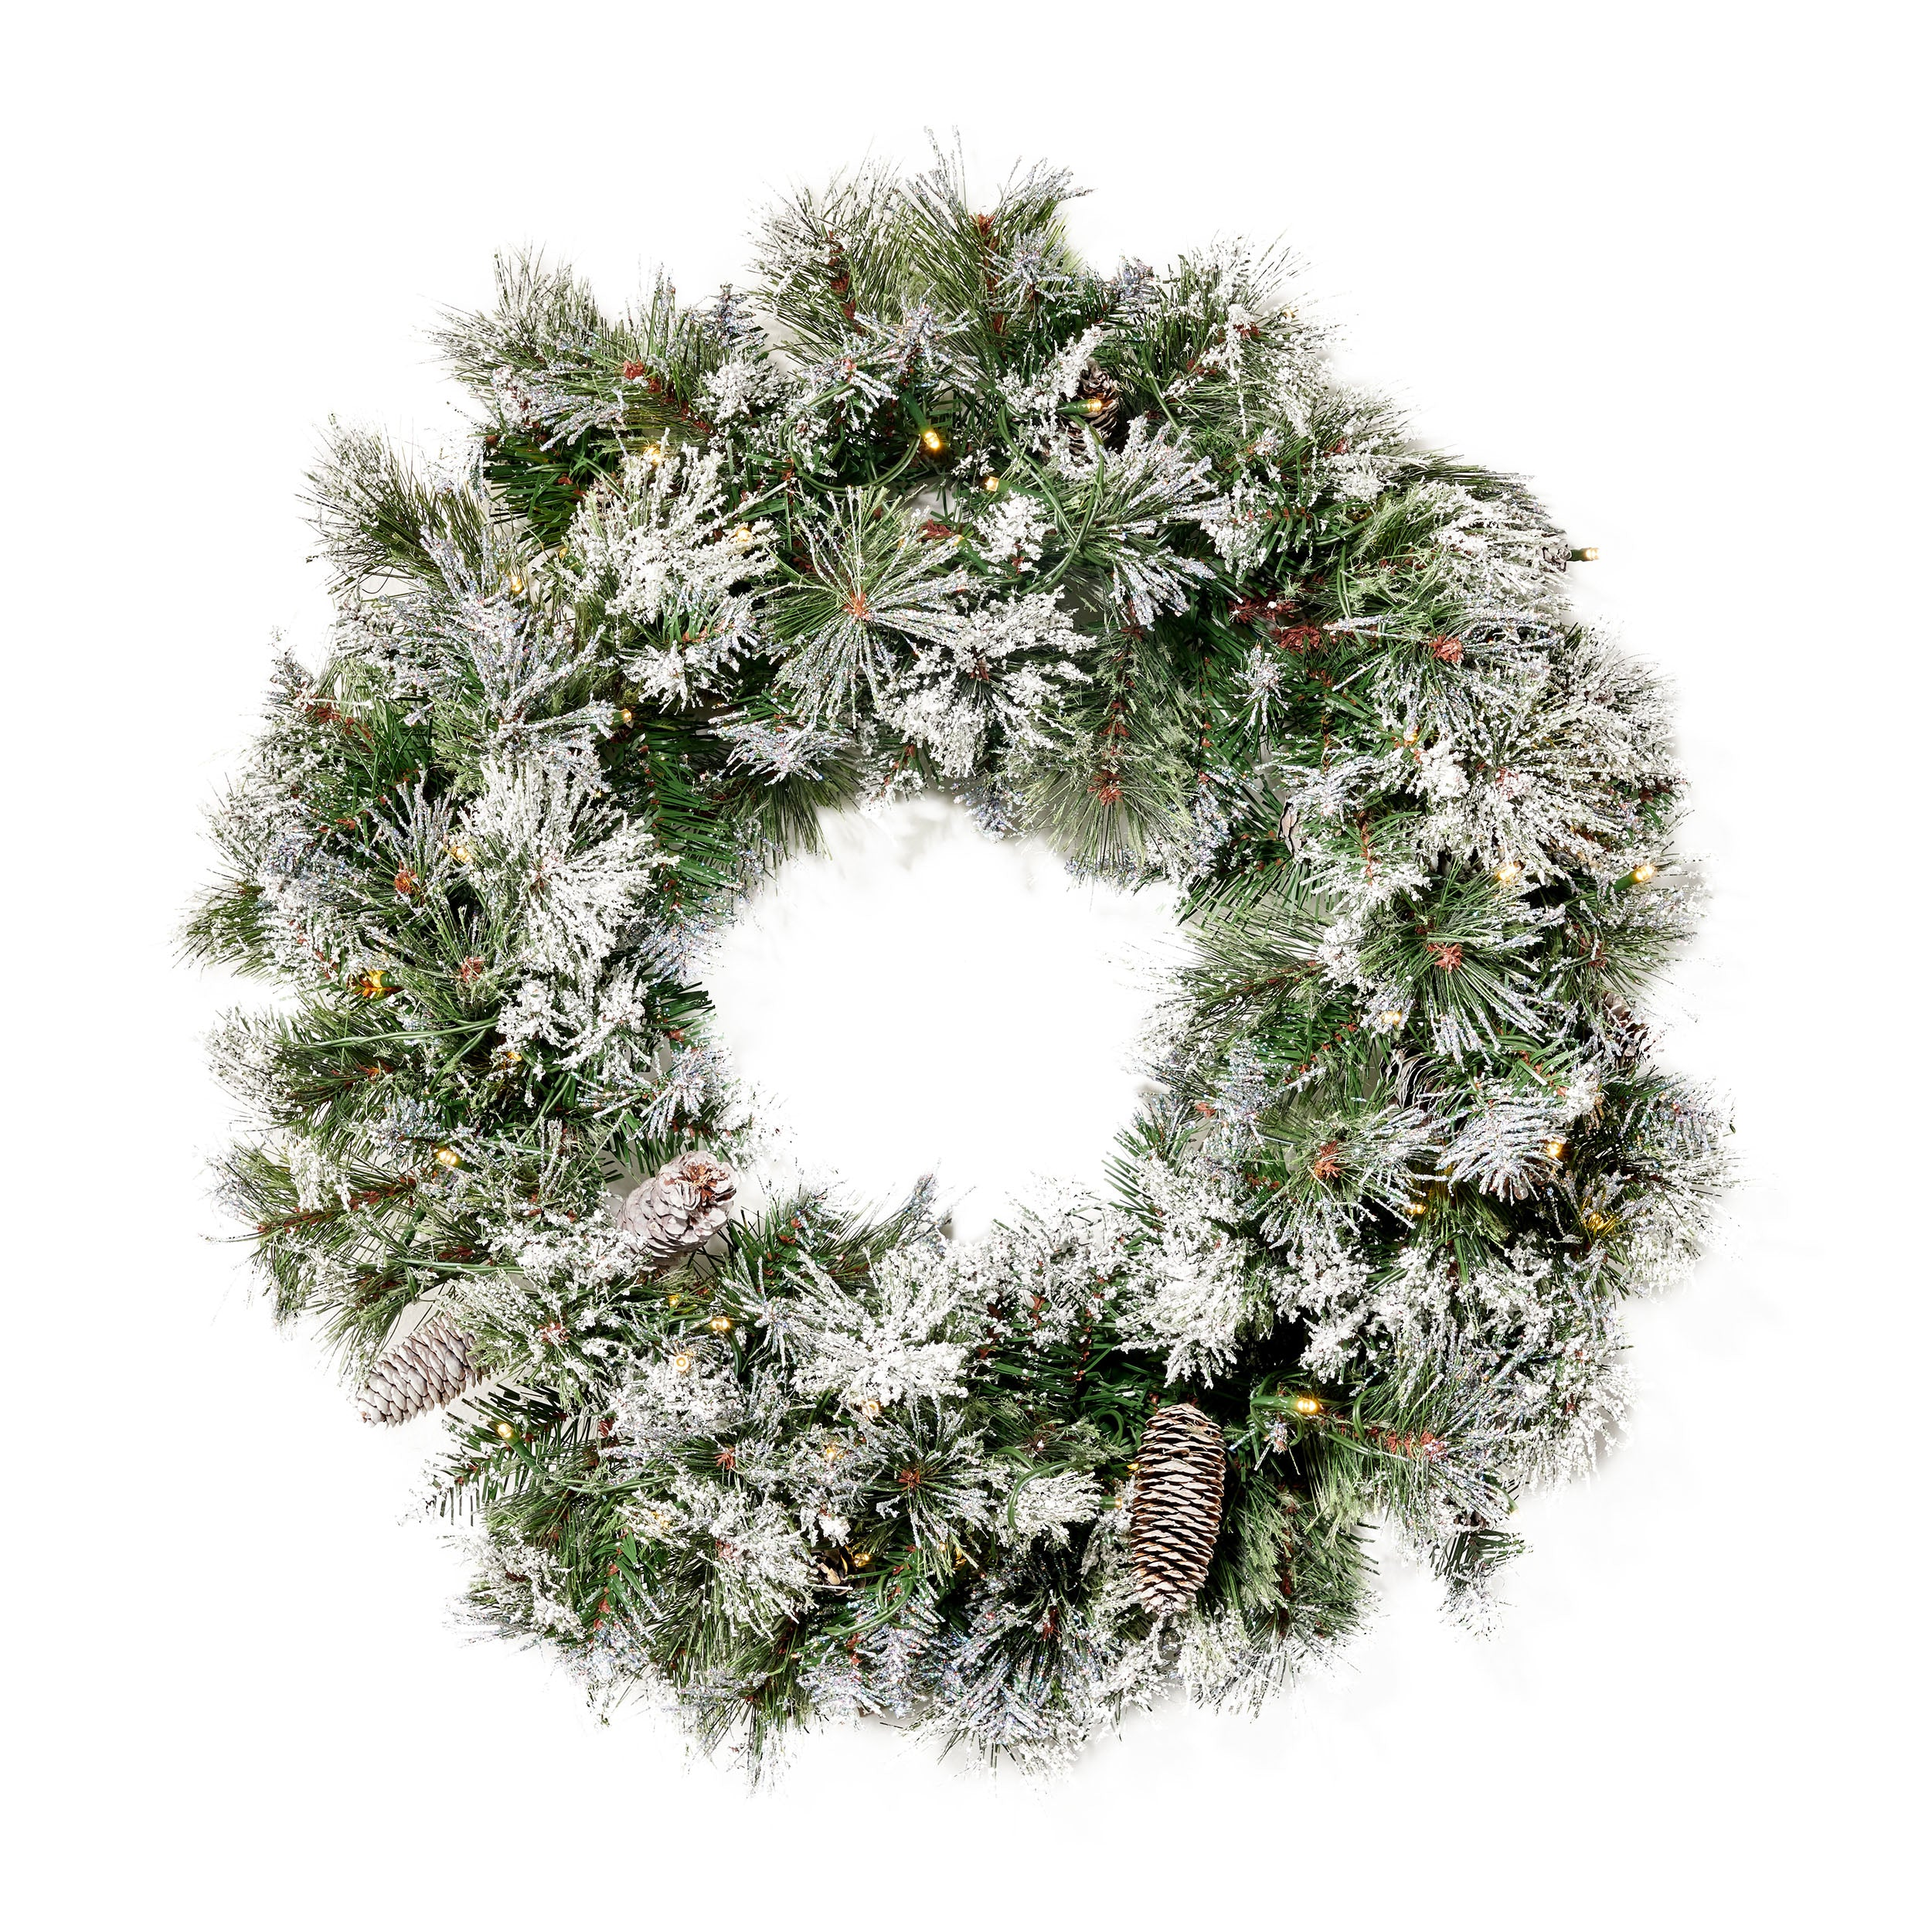 24 Cashmere Pine and Mixed Needles Warm White LED Artificial Christmas Wreath with Flocked Snow Glitter Branches and Pinecones